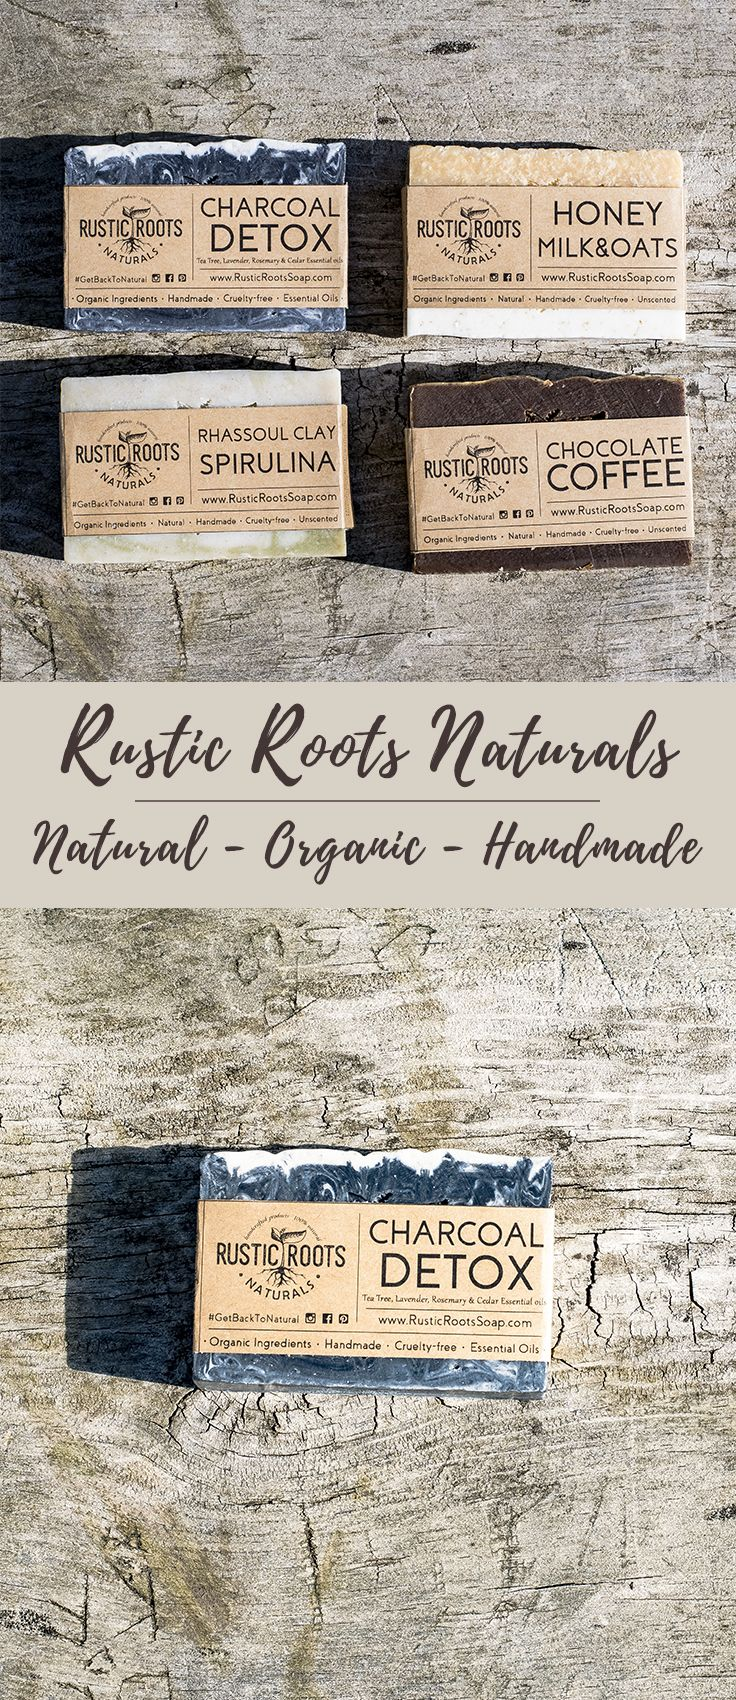 Rustic Roots ! #getbacktonatural